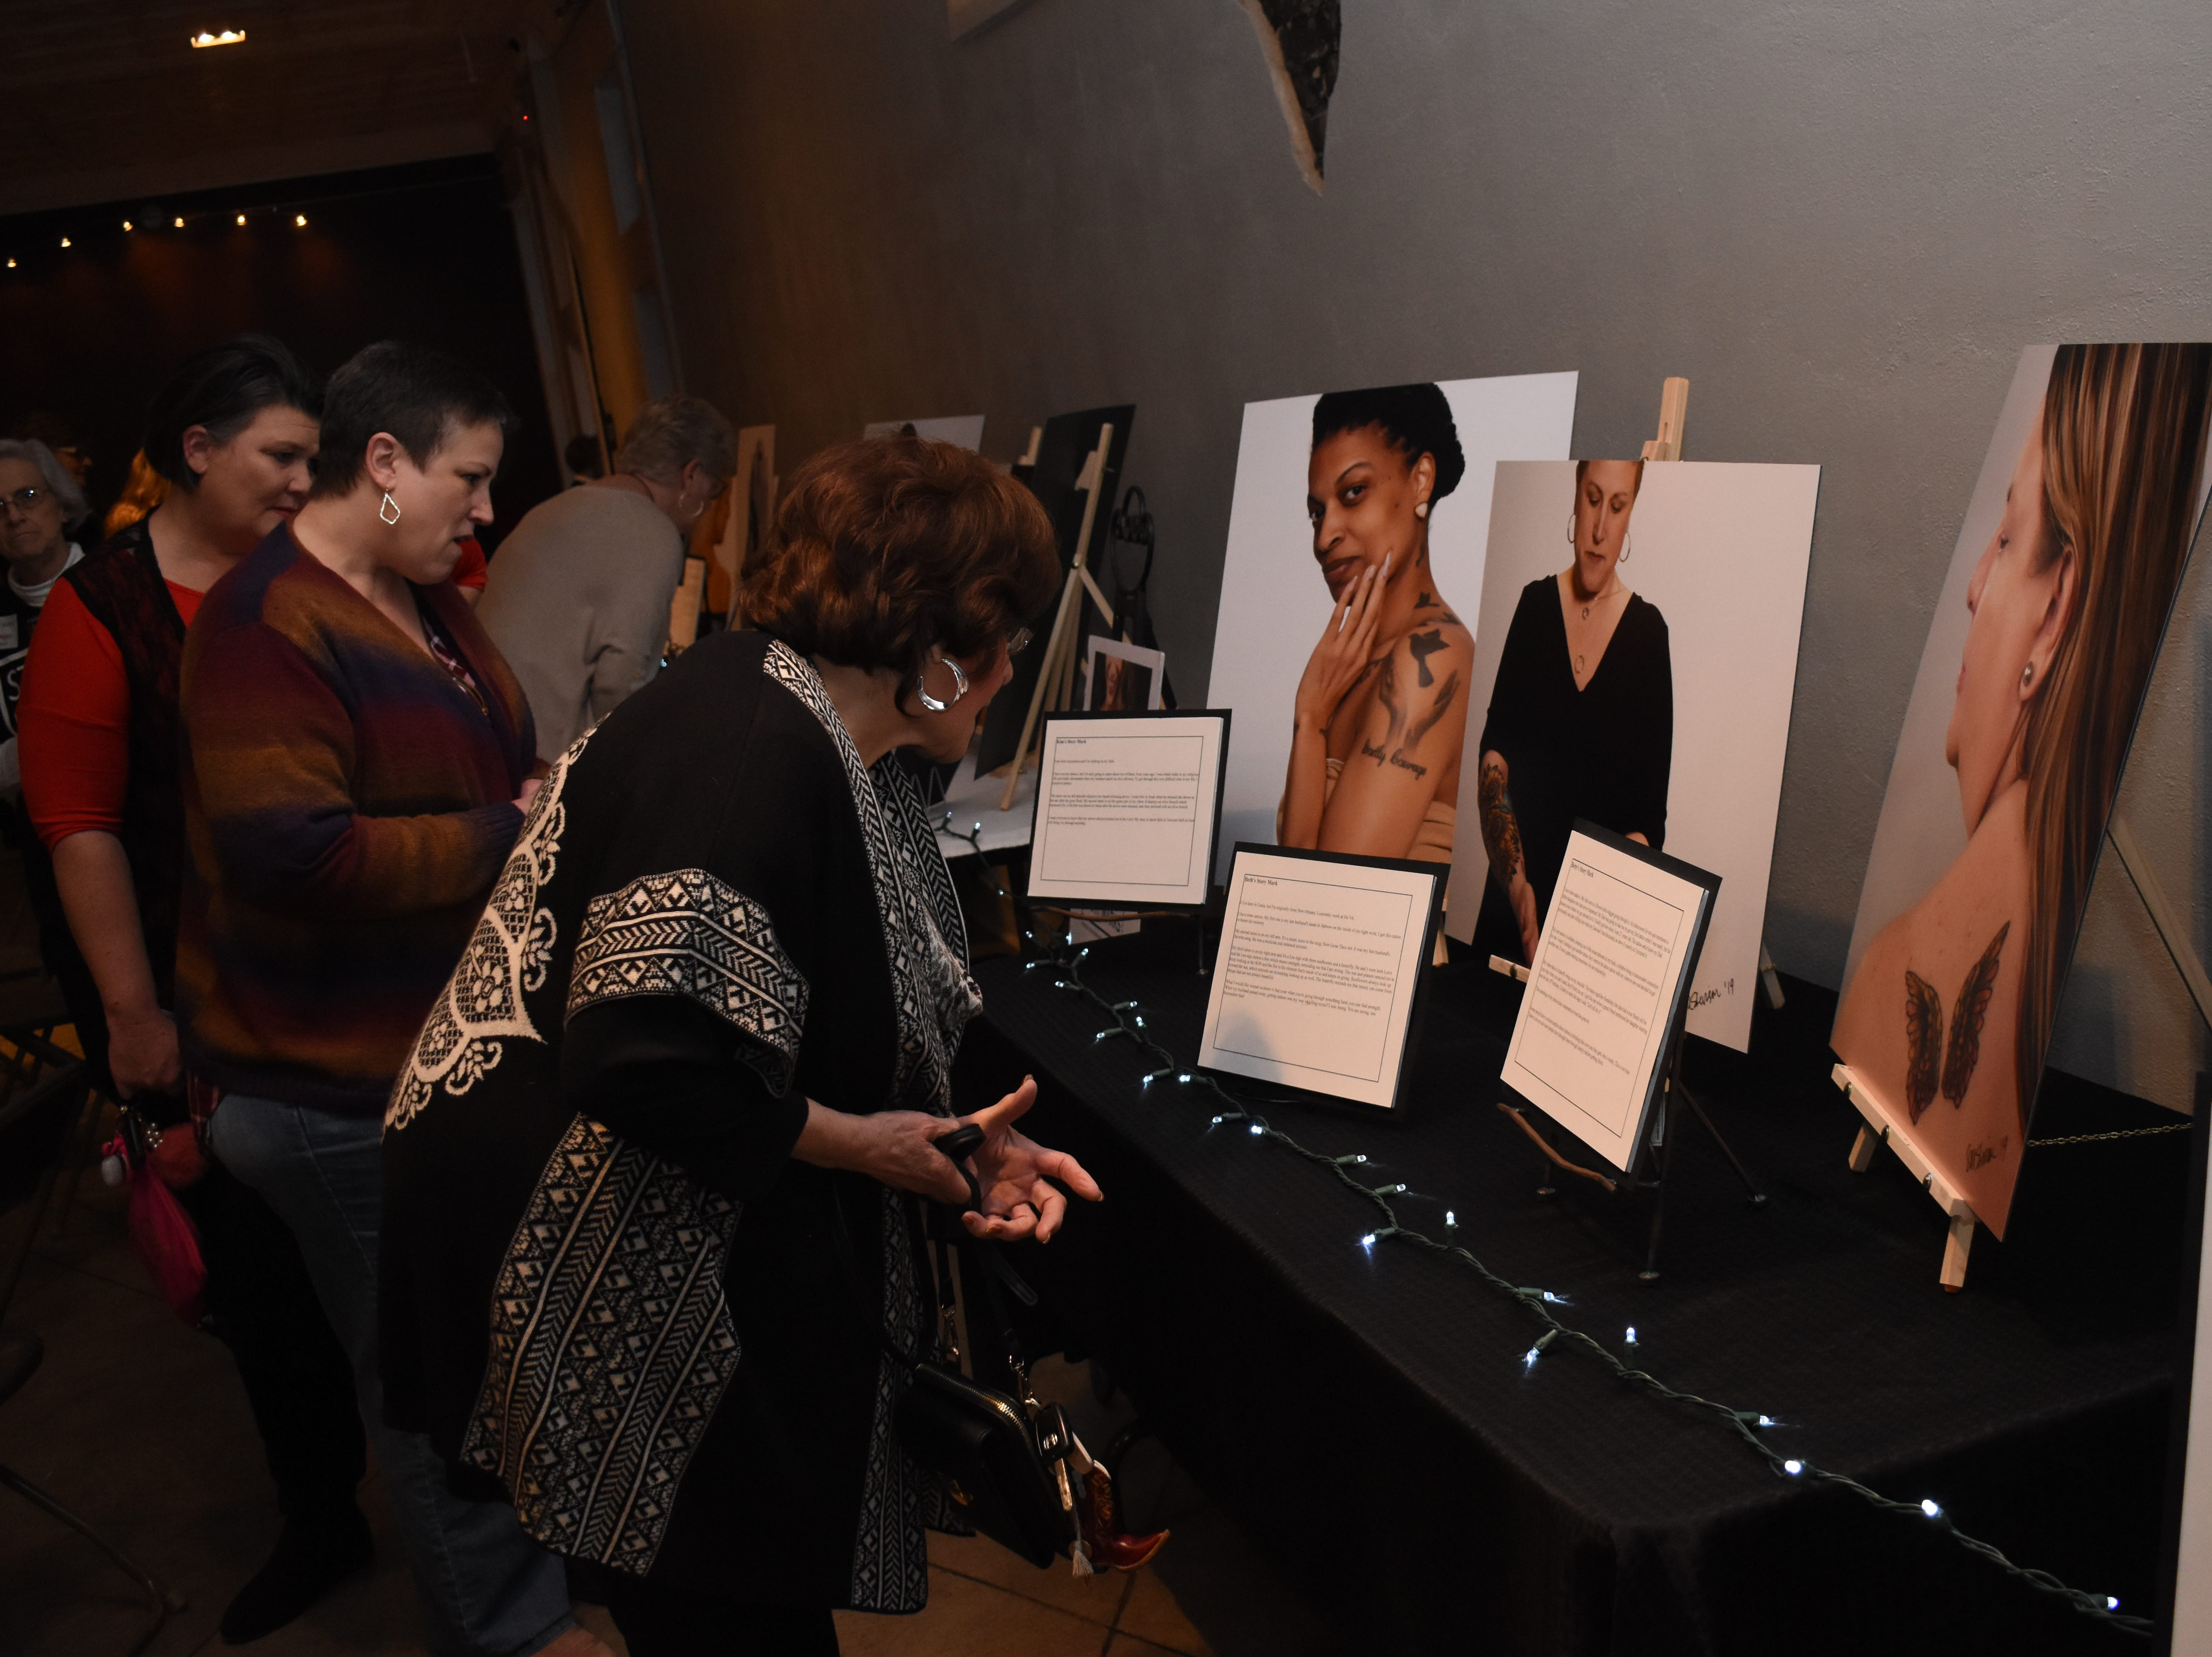 """Story Marks,"" an event highlighting women who have tattoos and the stories behind them was held Friday, Feb. 1, 2019 at Willowbench Meeting Place in Pineville.